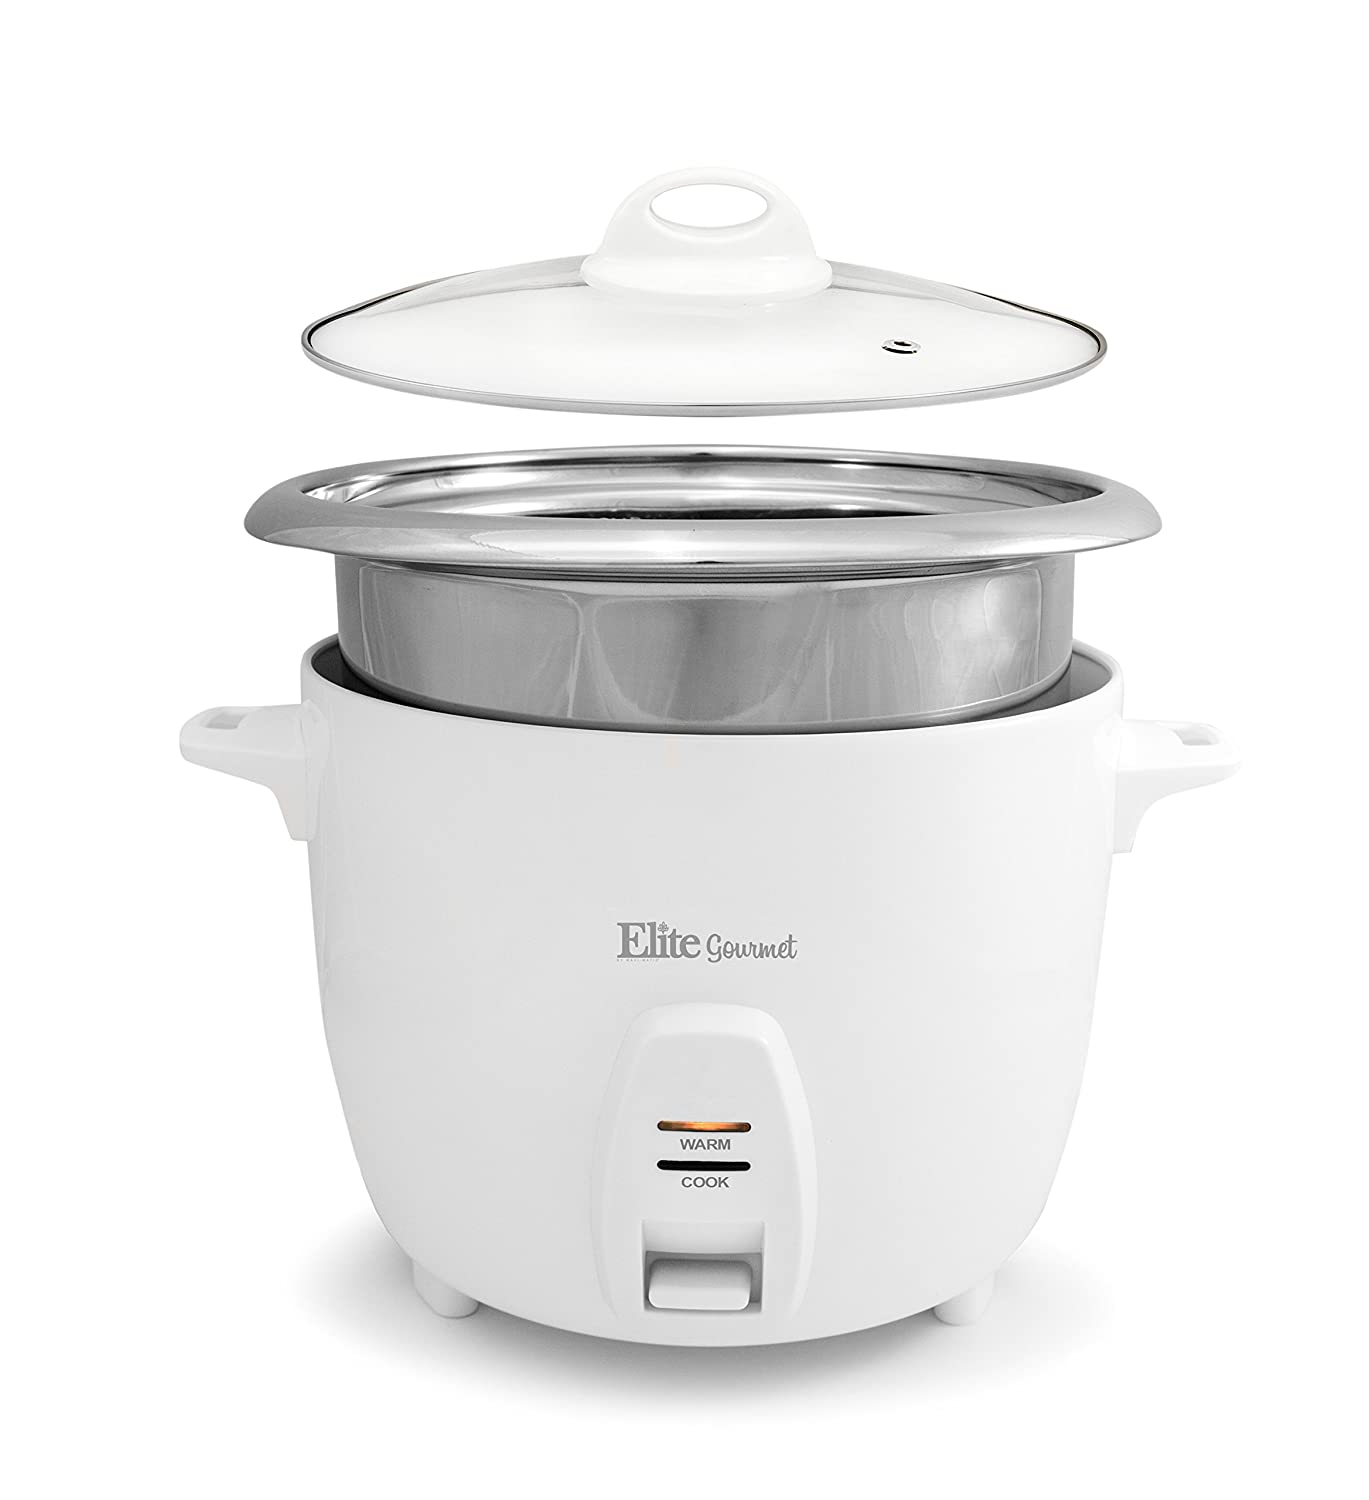 Elite Gourmet ERC-2010 Electric Rice Cooker with Stainless Steel Inner Pot Makes Soups, Stews, Grains, Cereals, 10 Cooked (5 Cups Uncooked), Cup Cups), White